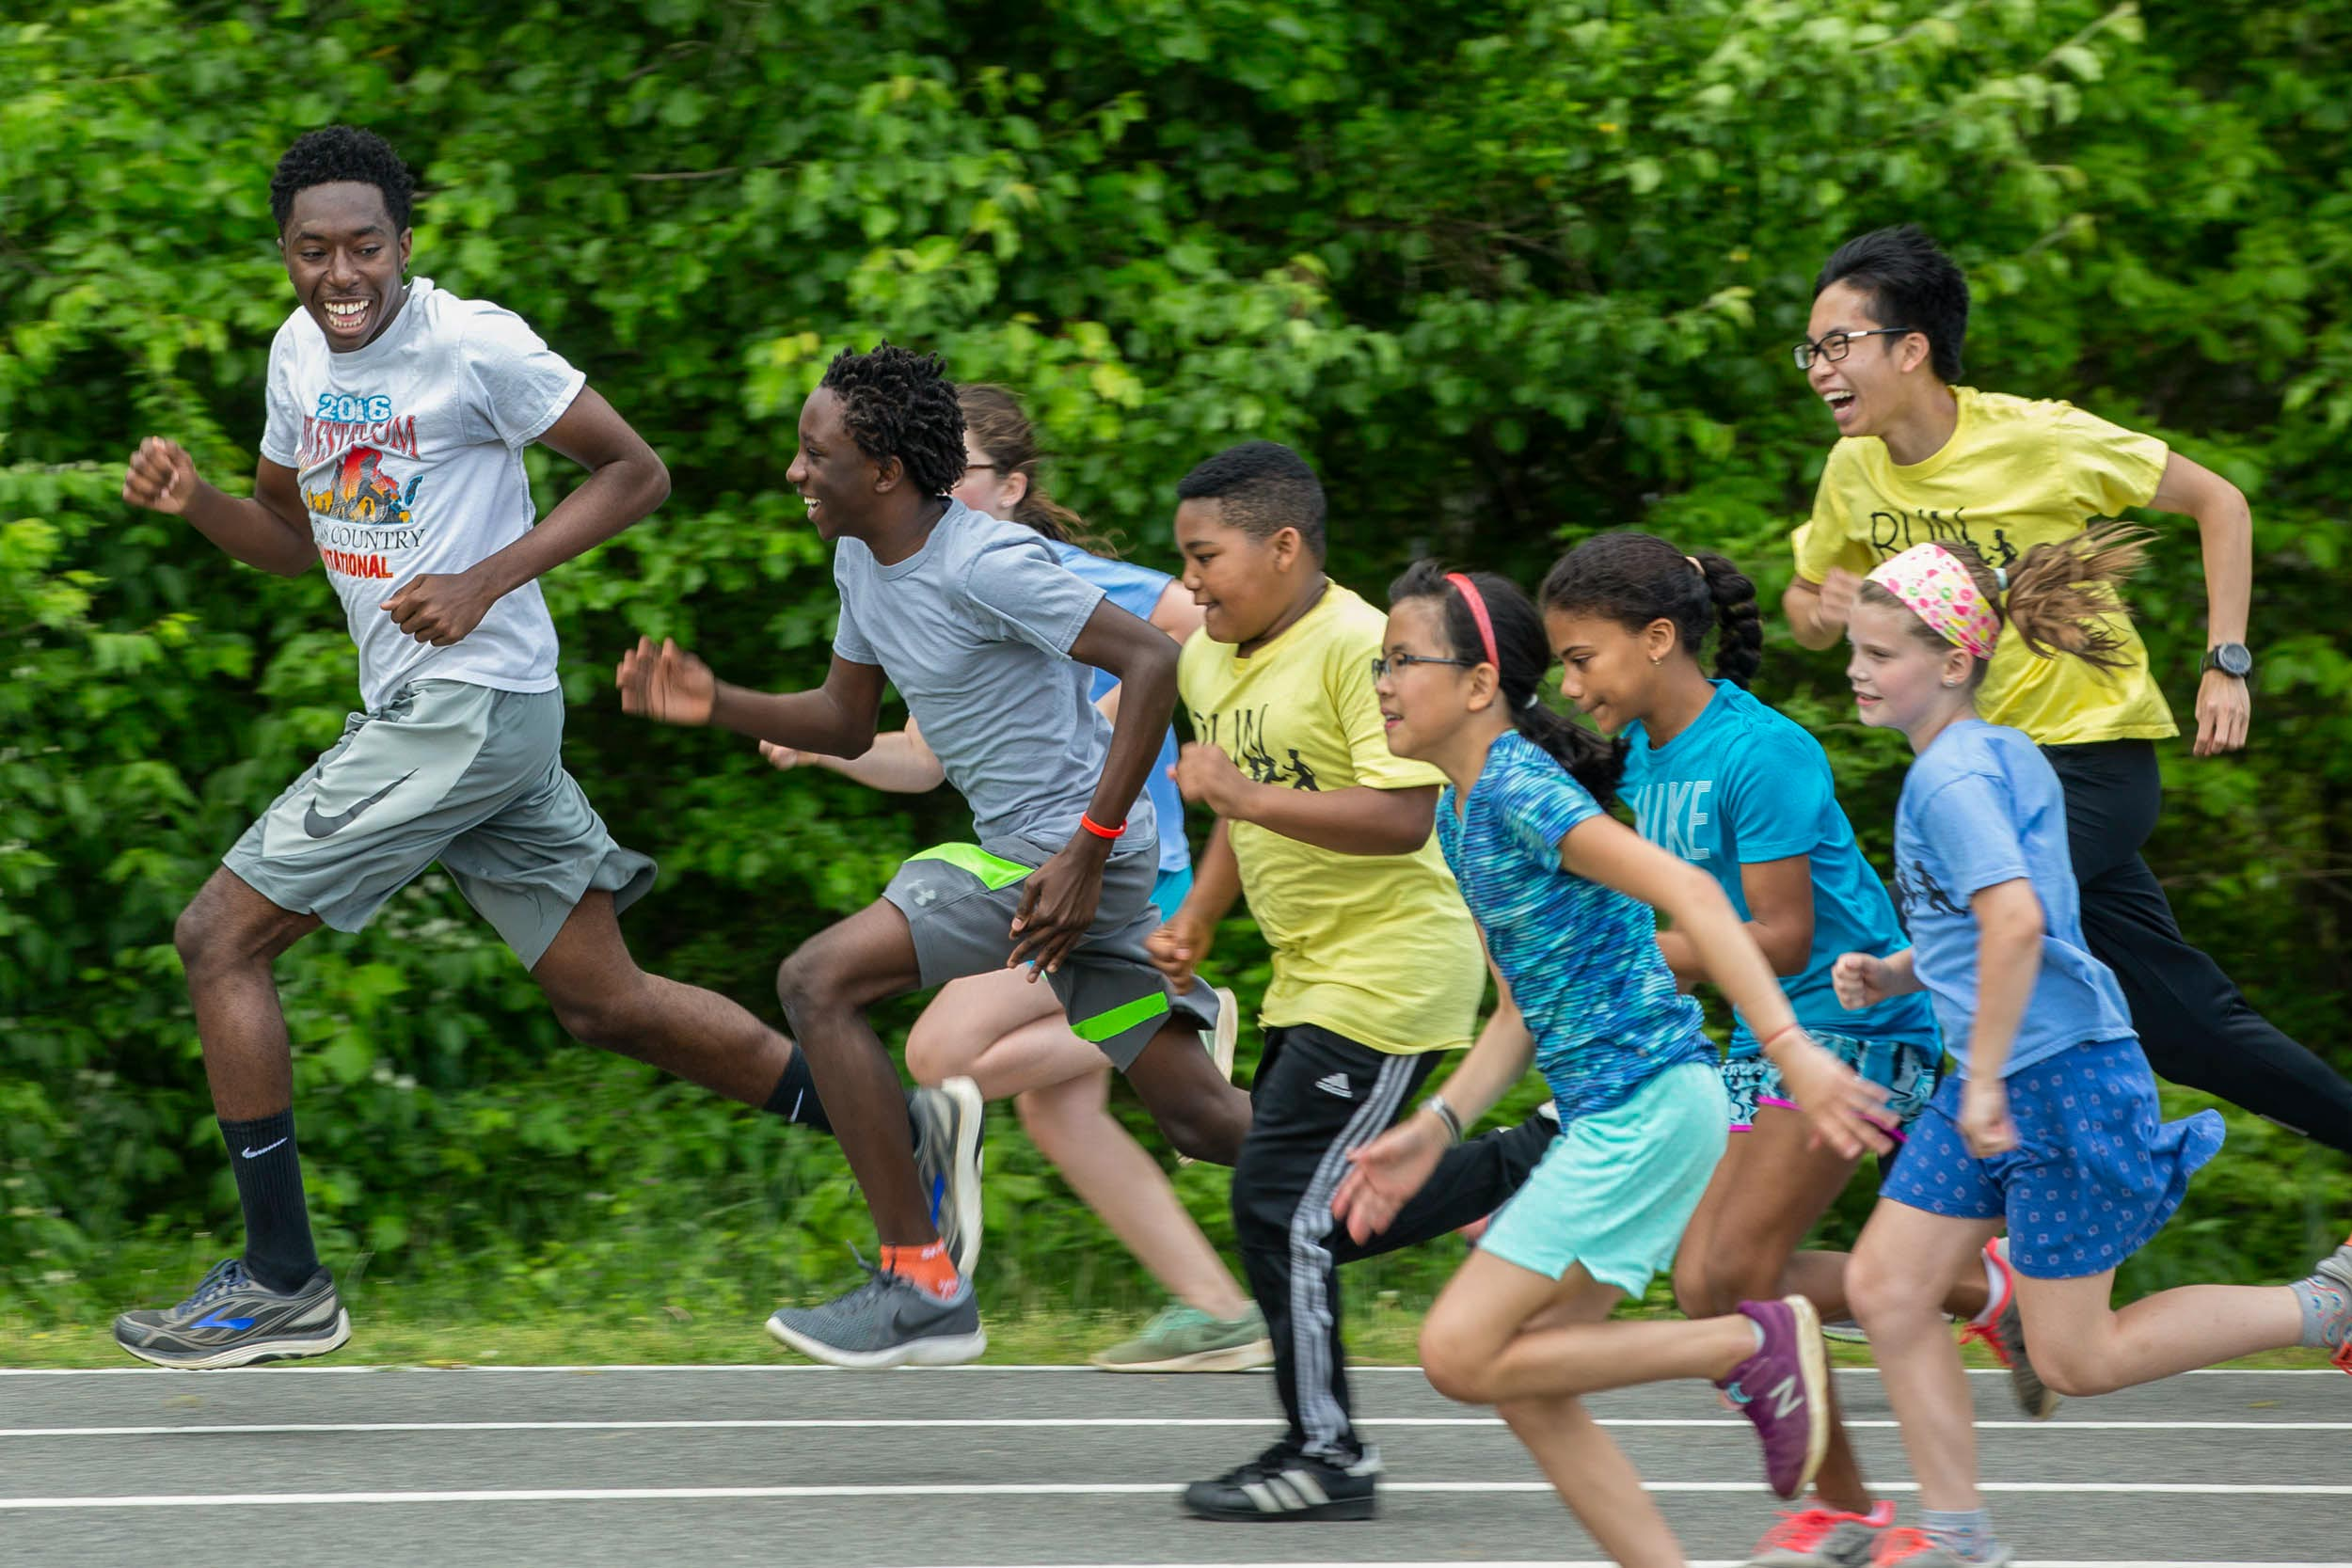 UVA students and Charlottesville children were off to the races for Sunday's final Run Charlottesville event.